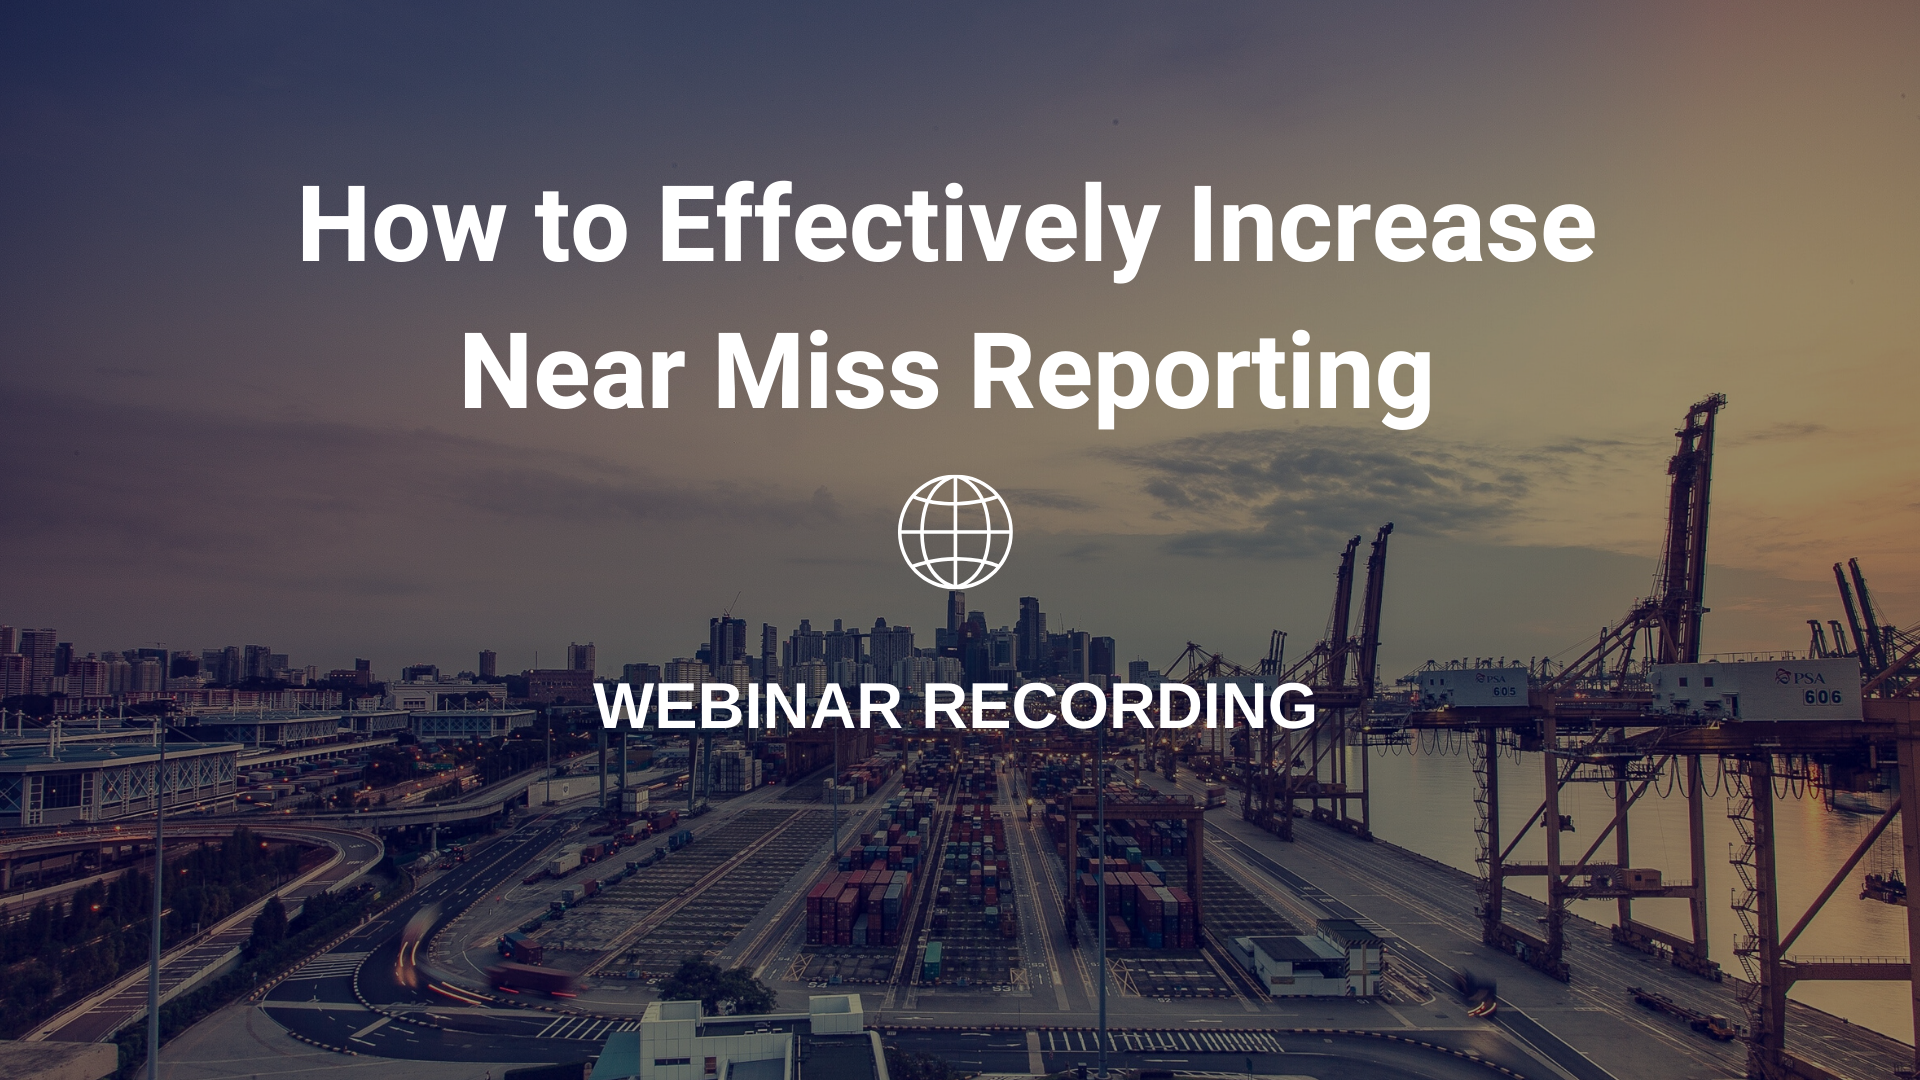 How to Effectively Increase Near Miss Reporting